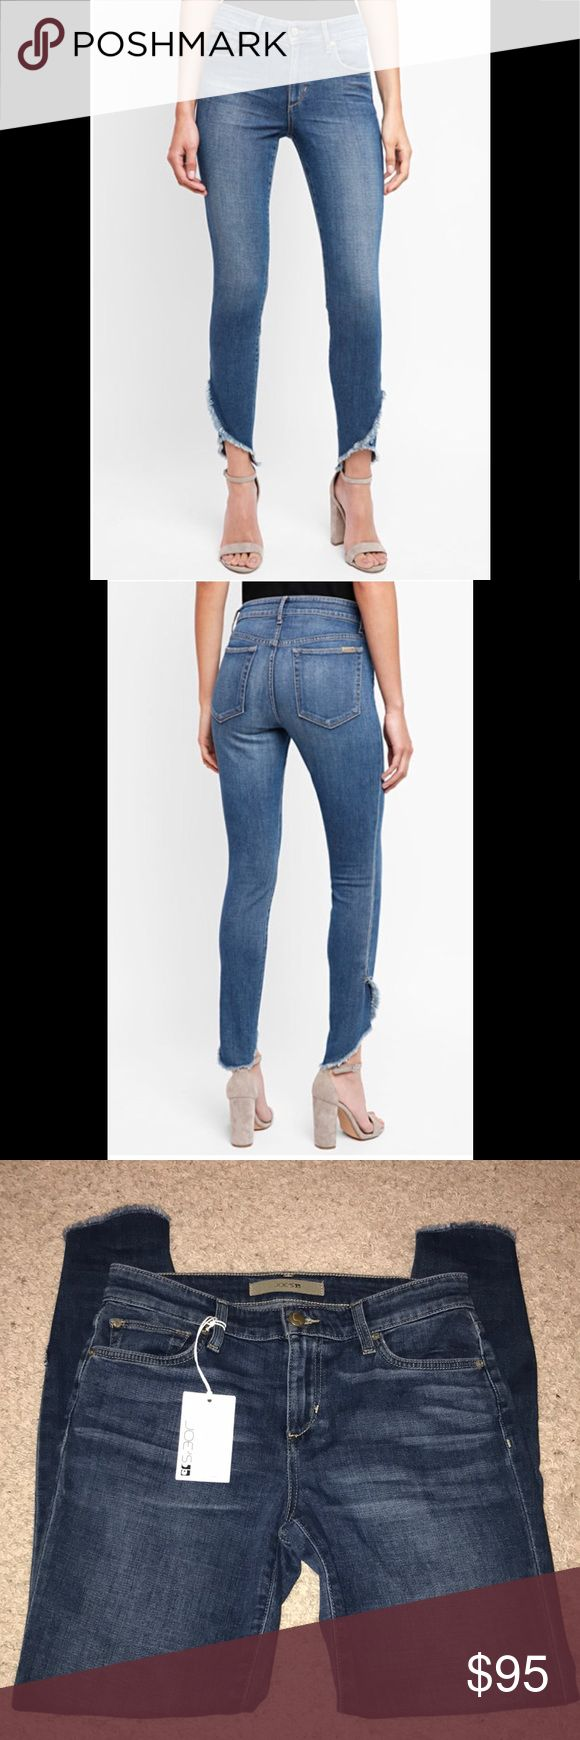 🍀 NWT! Joe's Jeans Icon Skinny with Wrap Hem Joe's Jeans Icon Skinny Jeans with Wrap Hem. NWT!  9 inch front and 12 inch back rise. ~27 inch inseam. ~4 inch bottom leg opening. 13 1/2 inches waist laying flat. Joe's Jeans Jeans Skinny